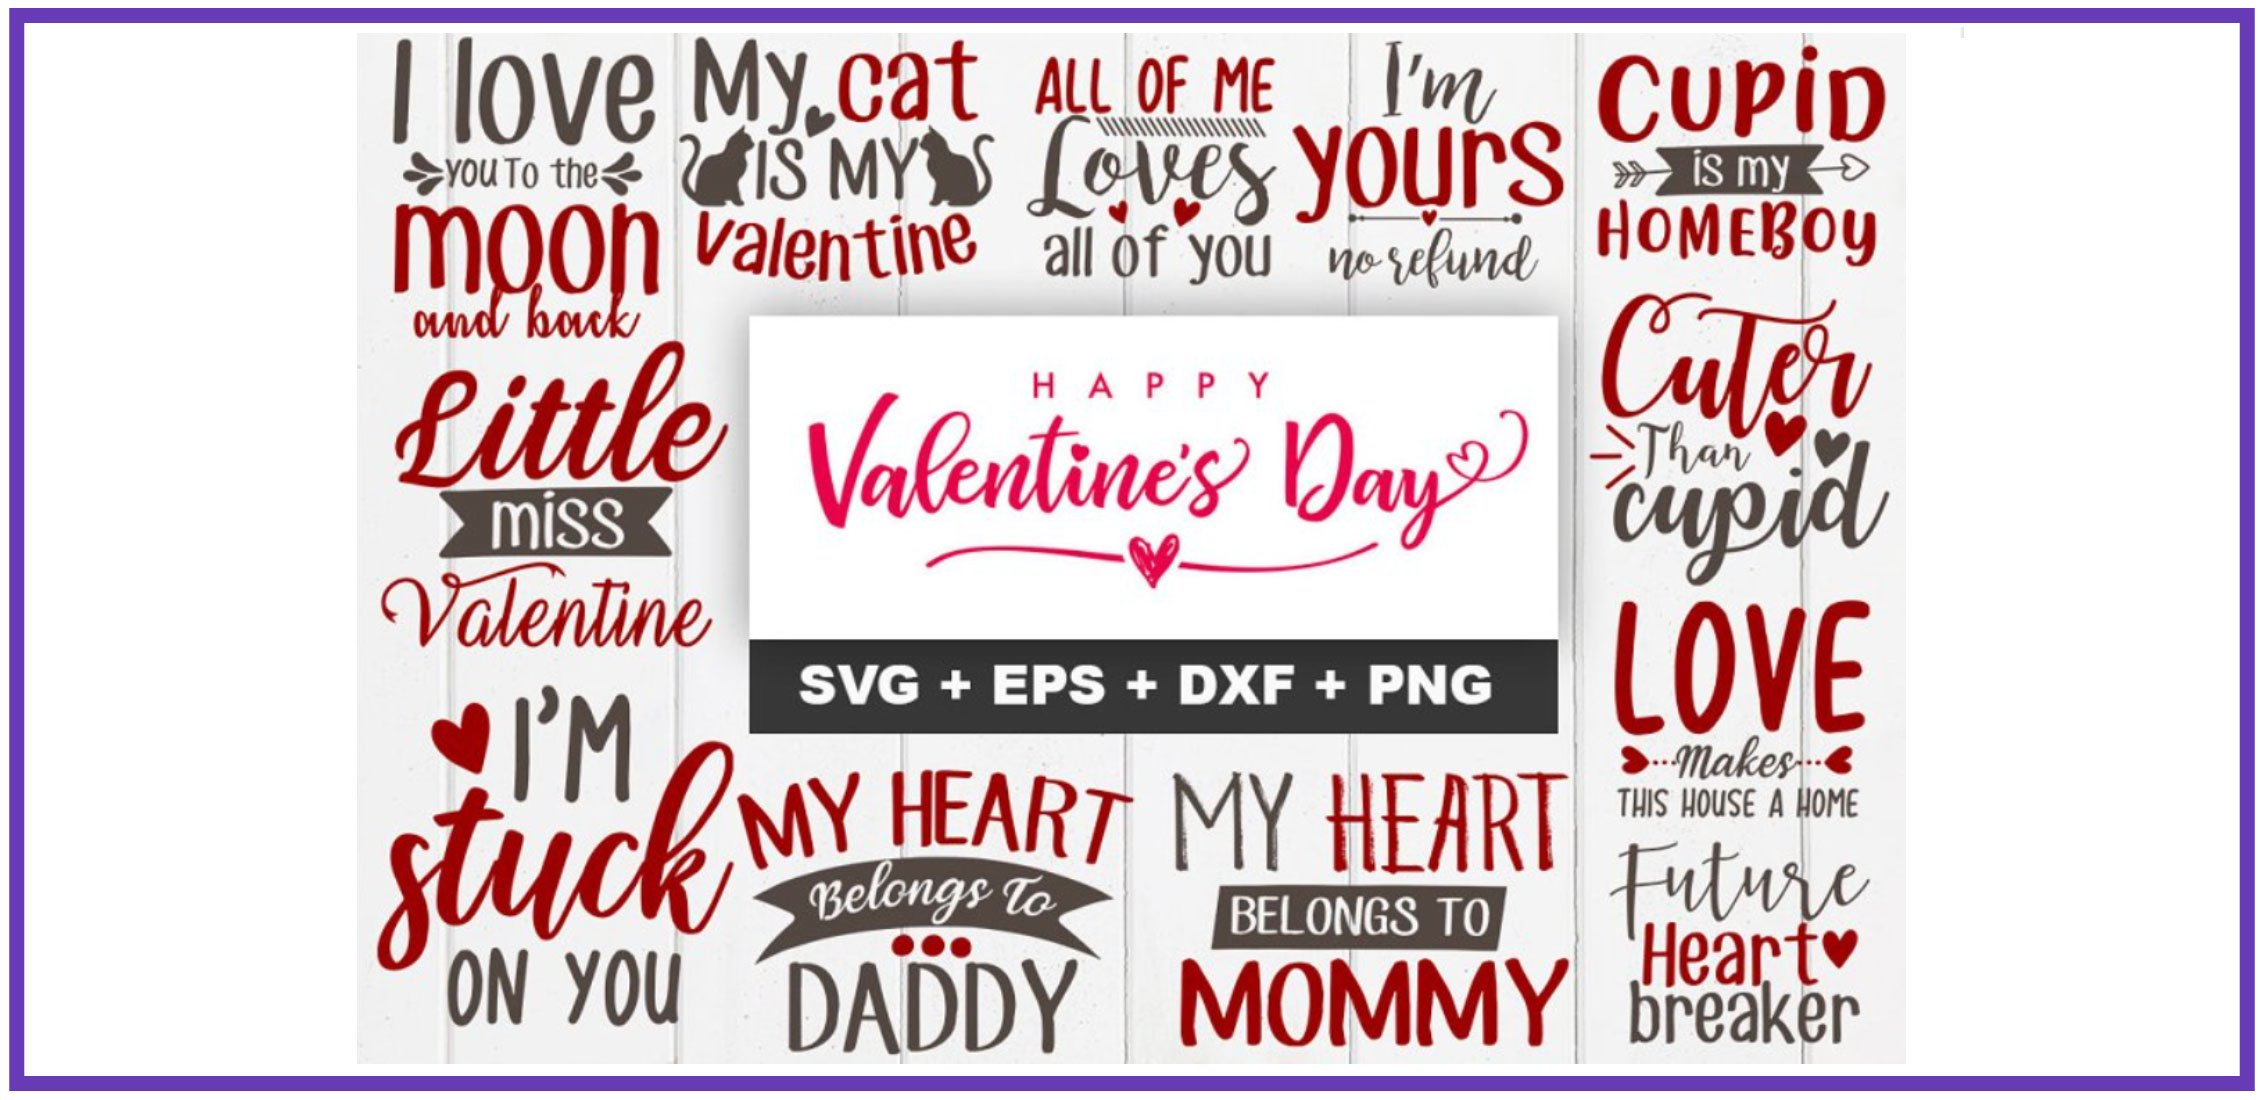 80+ Valentine's Day Shirts. Best T-shirt Designs Ideas For St. Valentine's Day - valentines day shirt design 5